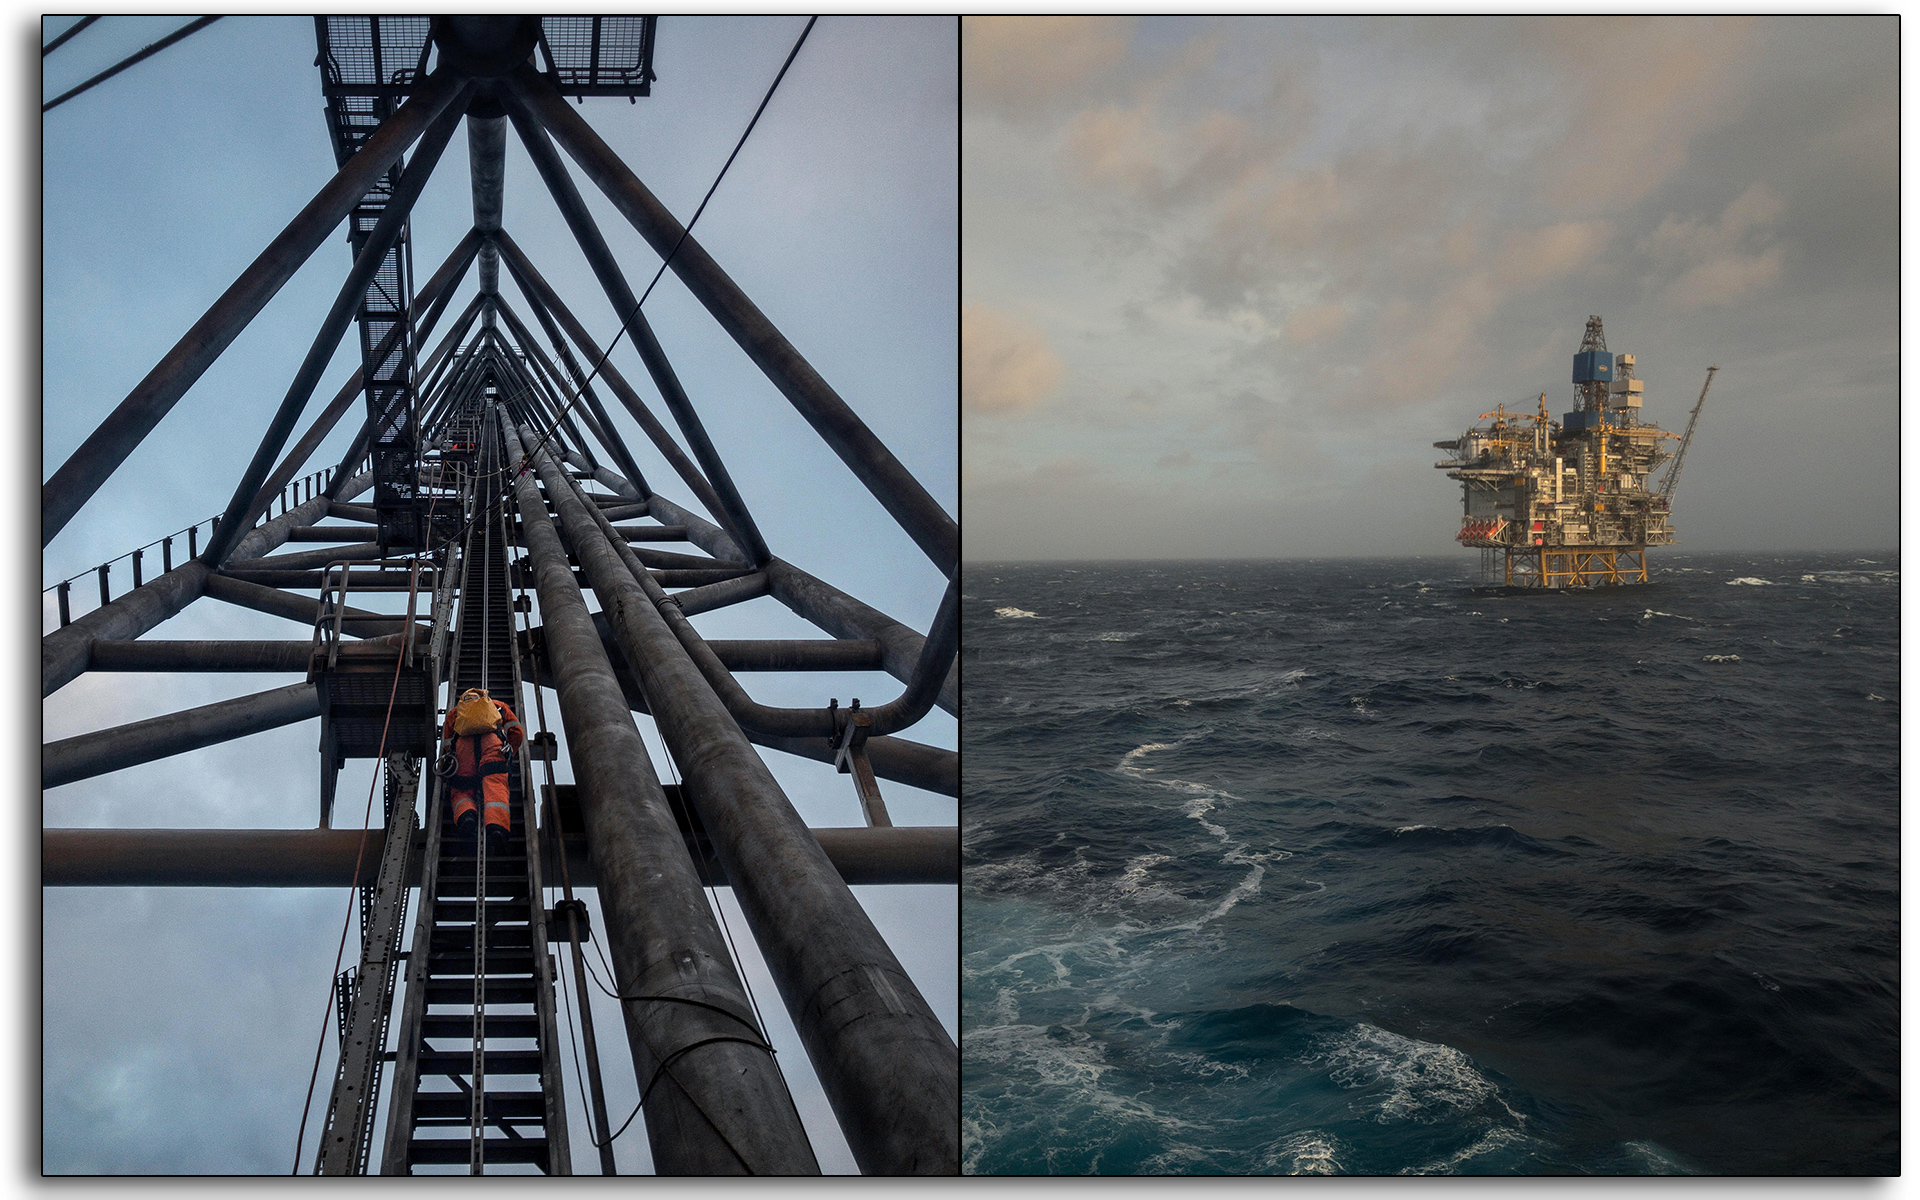 IRATA, rope access, climber, climbing, flare, offshore, Sun shine, sun rise, oil platform, Oil and gas, oil rig, Scotland, industry, industrial, Mariner, workers, construction.jpg